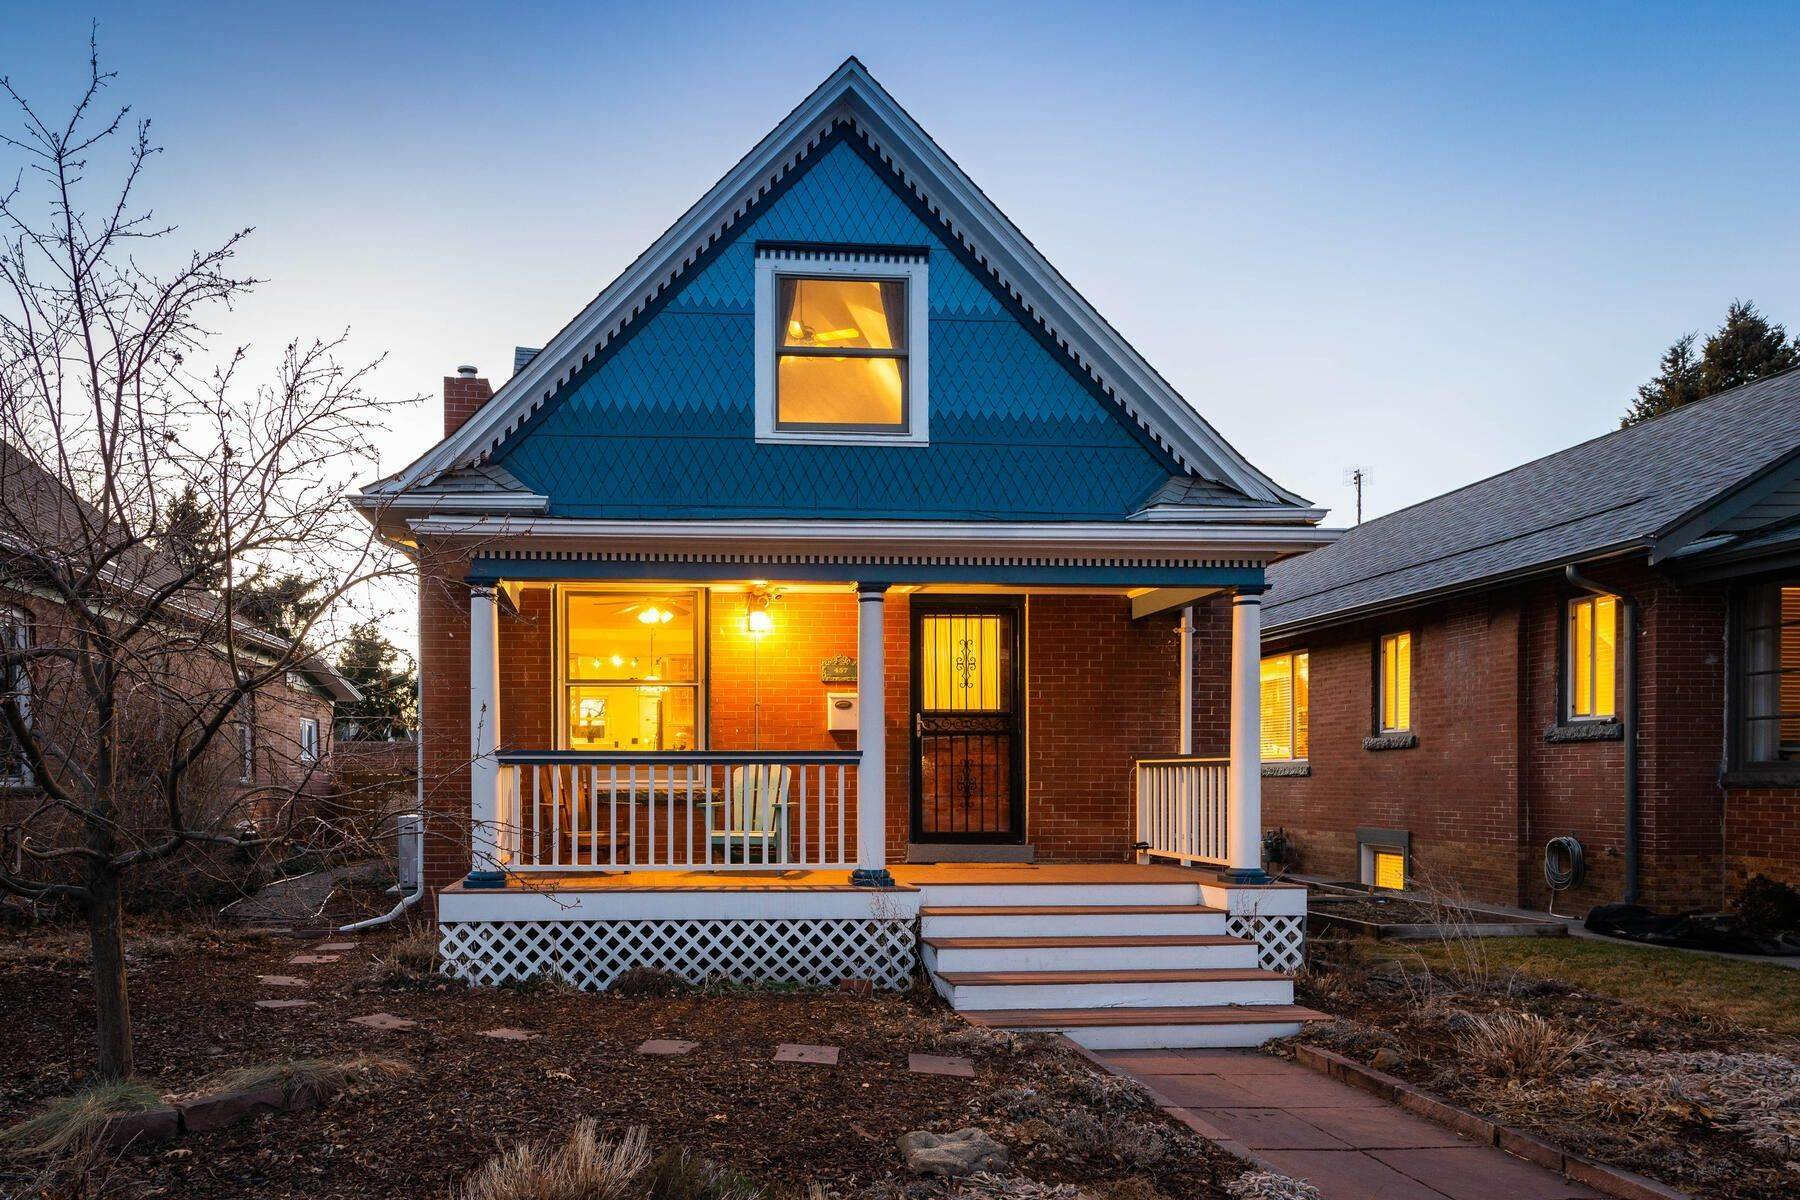 Property en Storybook Victorian is Beautifully Located within Alamo Placita 457 N Pearl Street Denver, Colorado 80203 Estados Unidos